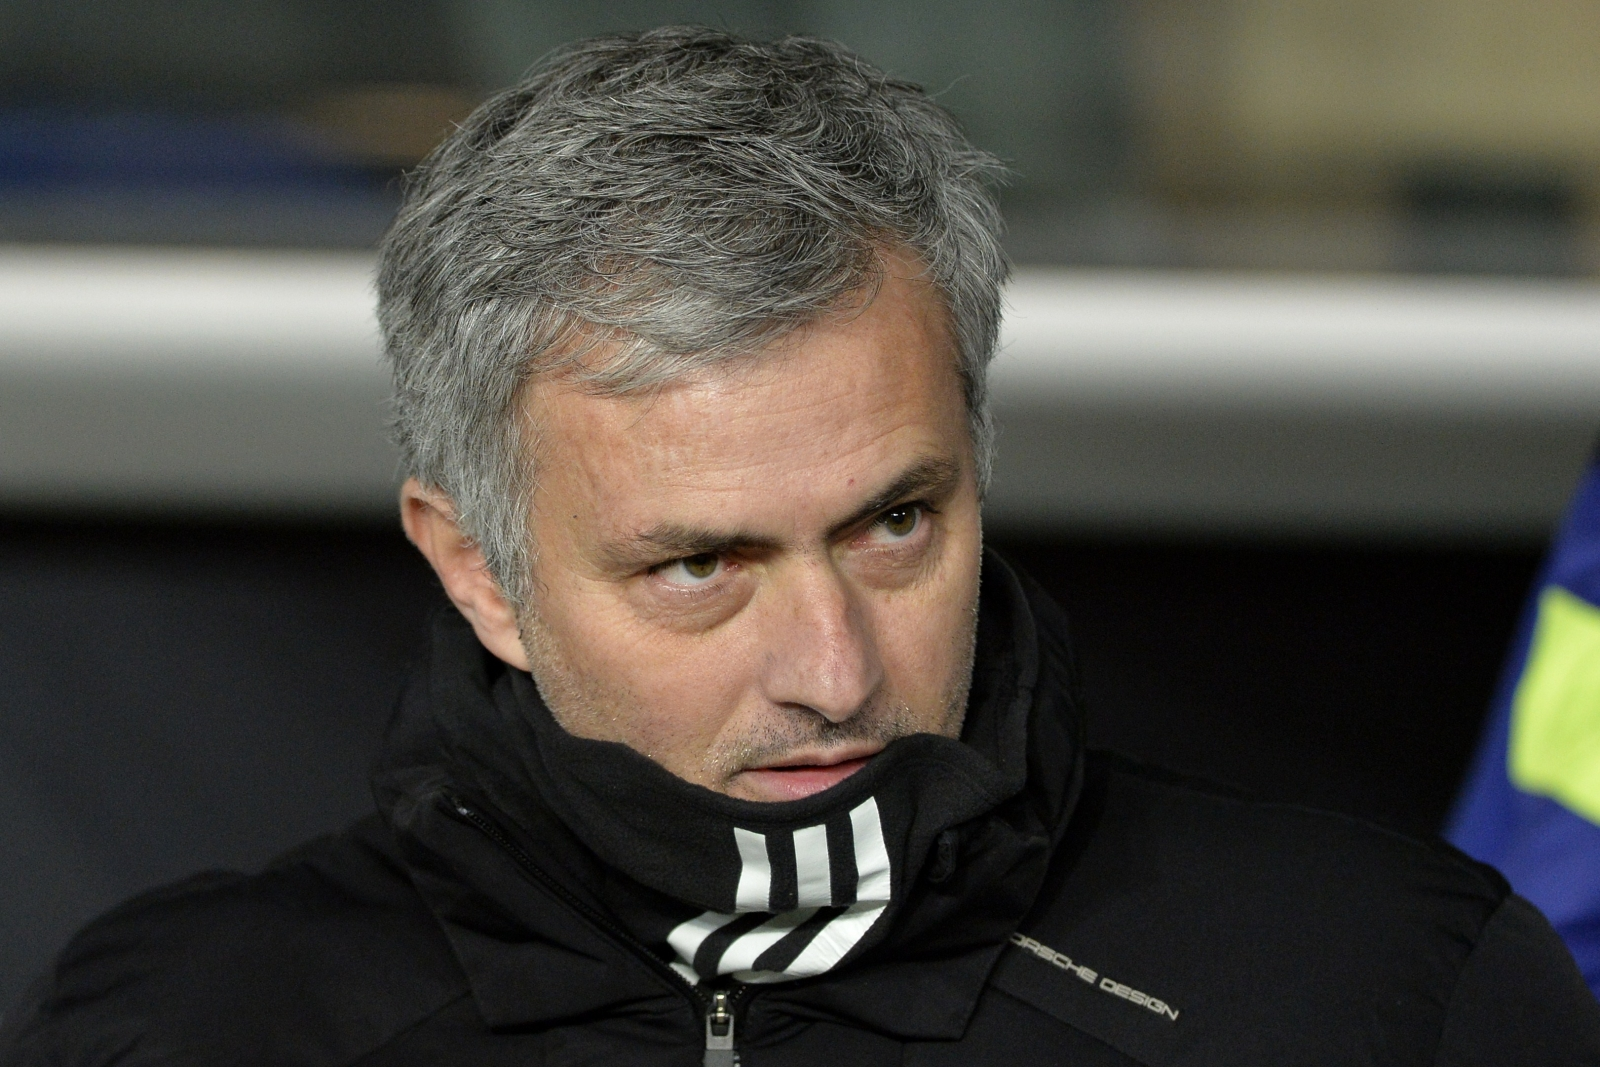 Jose Mourinho: Chelsea striker Diego Costa must change approach for cup final match